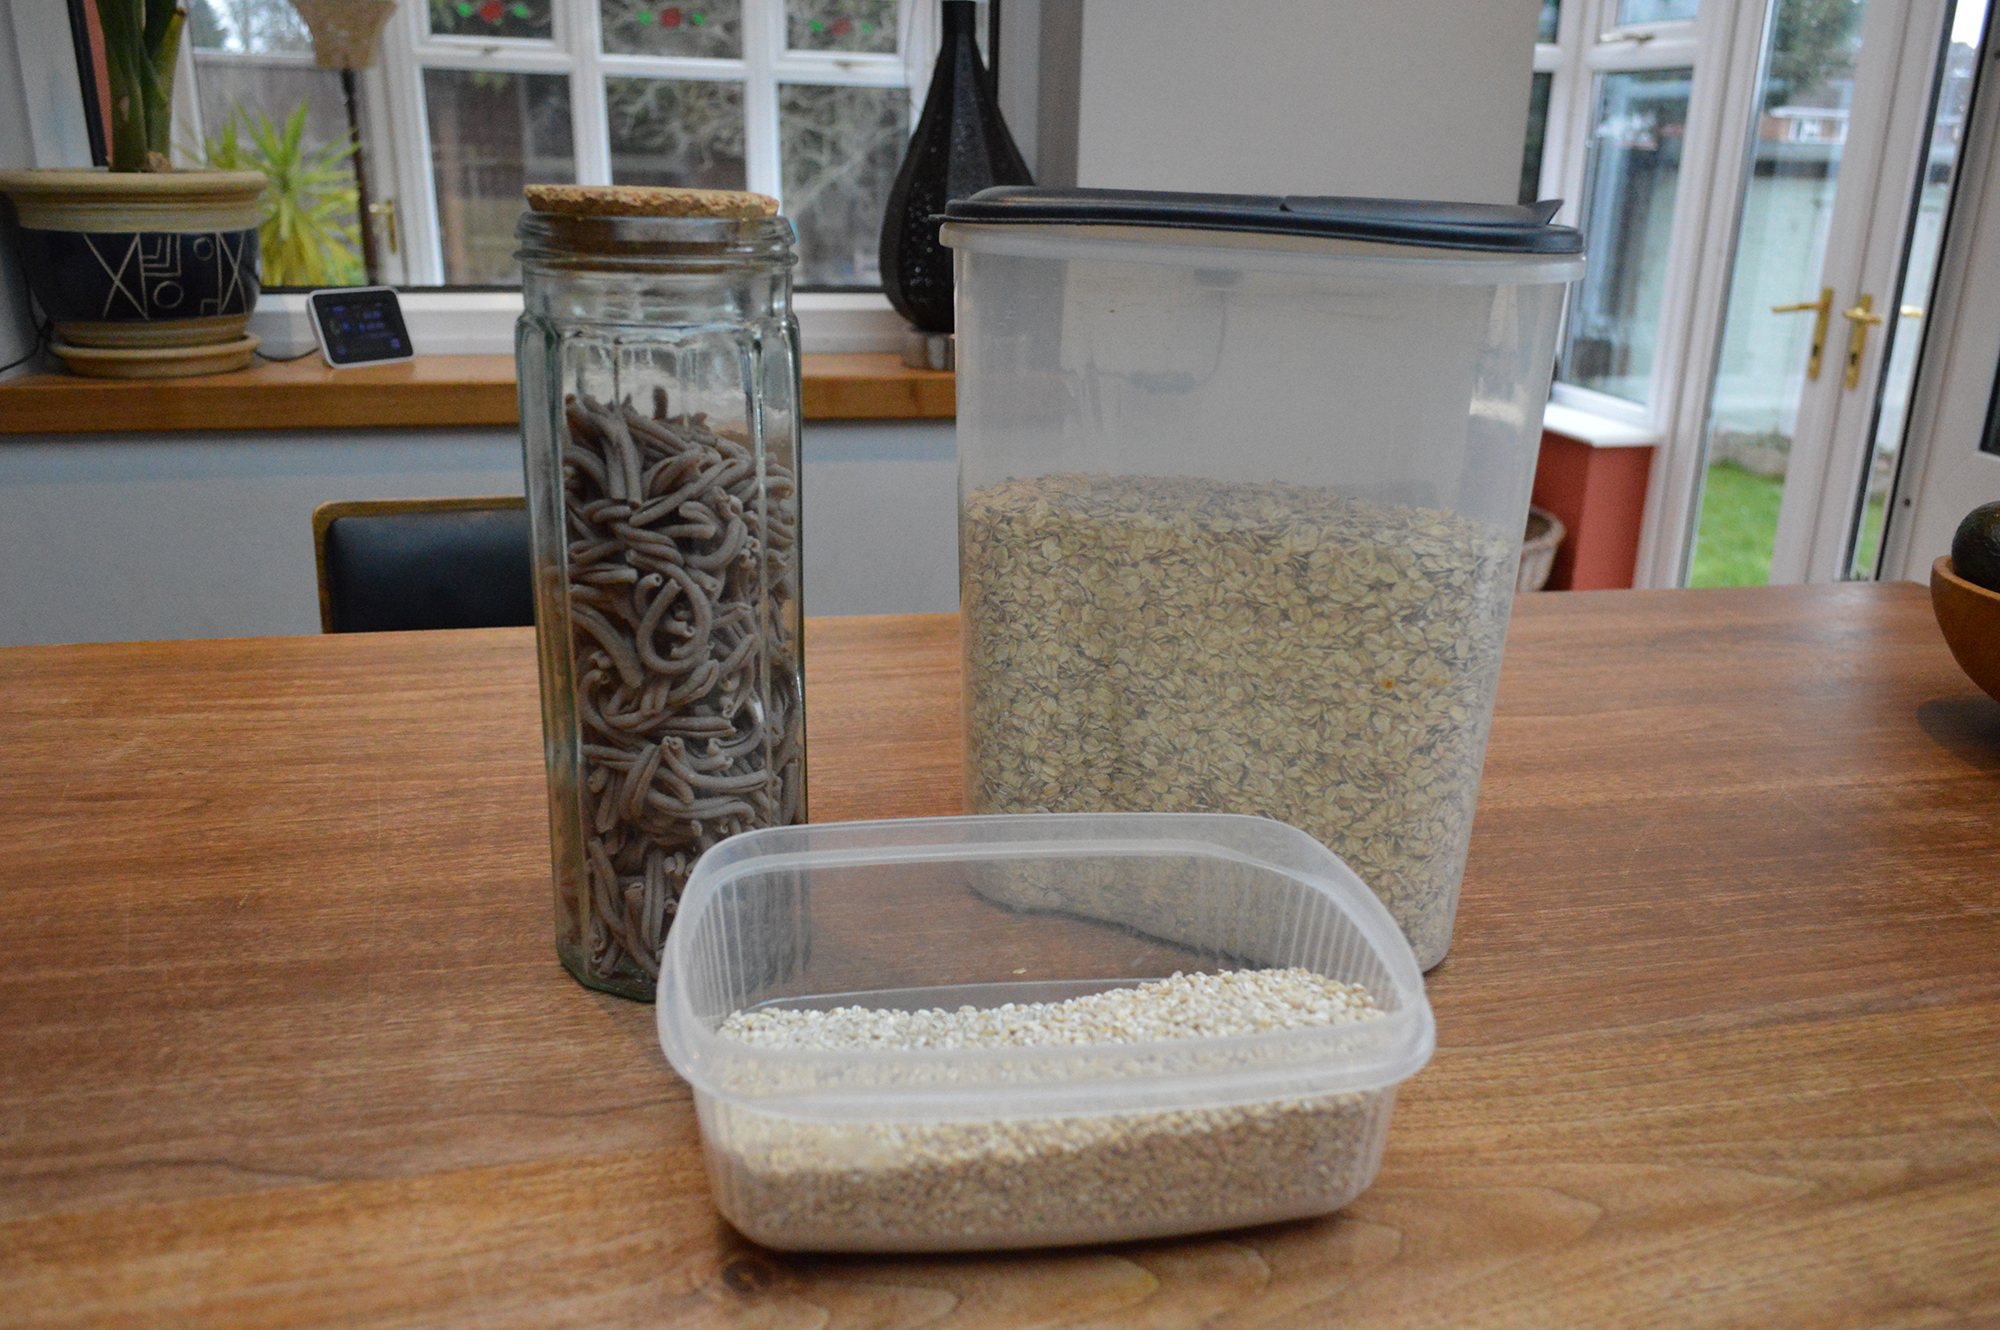 Pasta, oats and rice. (Image: Lily Canter)